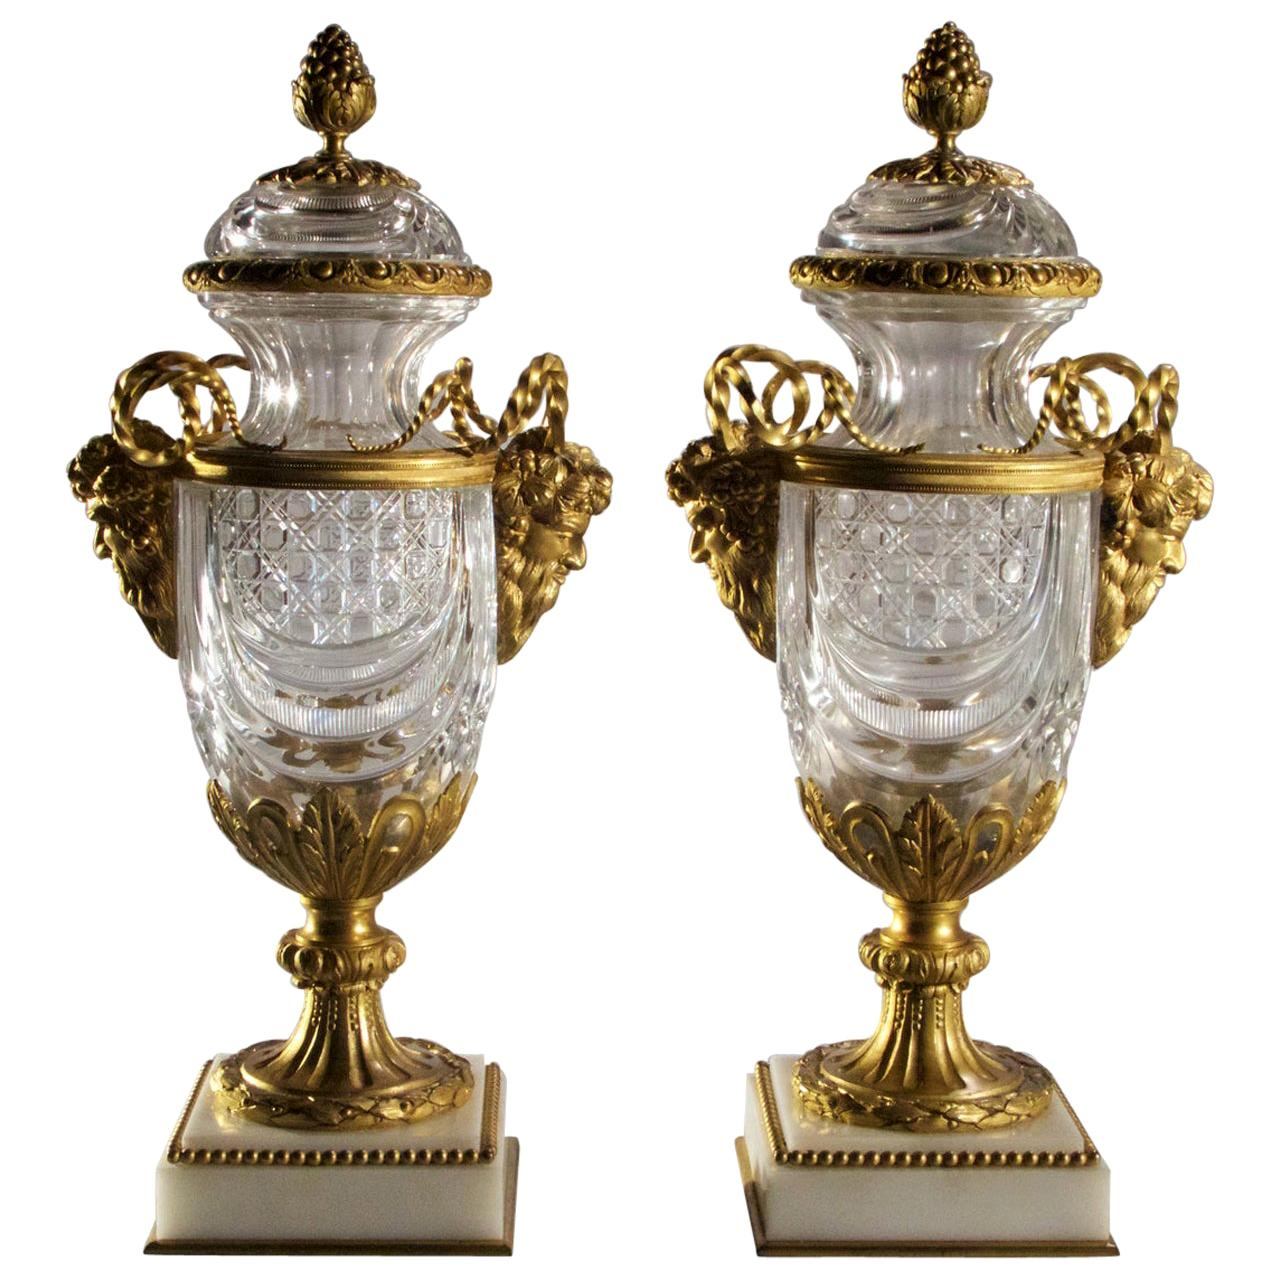 Exceptional Pair of Bronze-Mounted Crystal Vases Surmounted on Marble Base